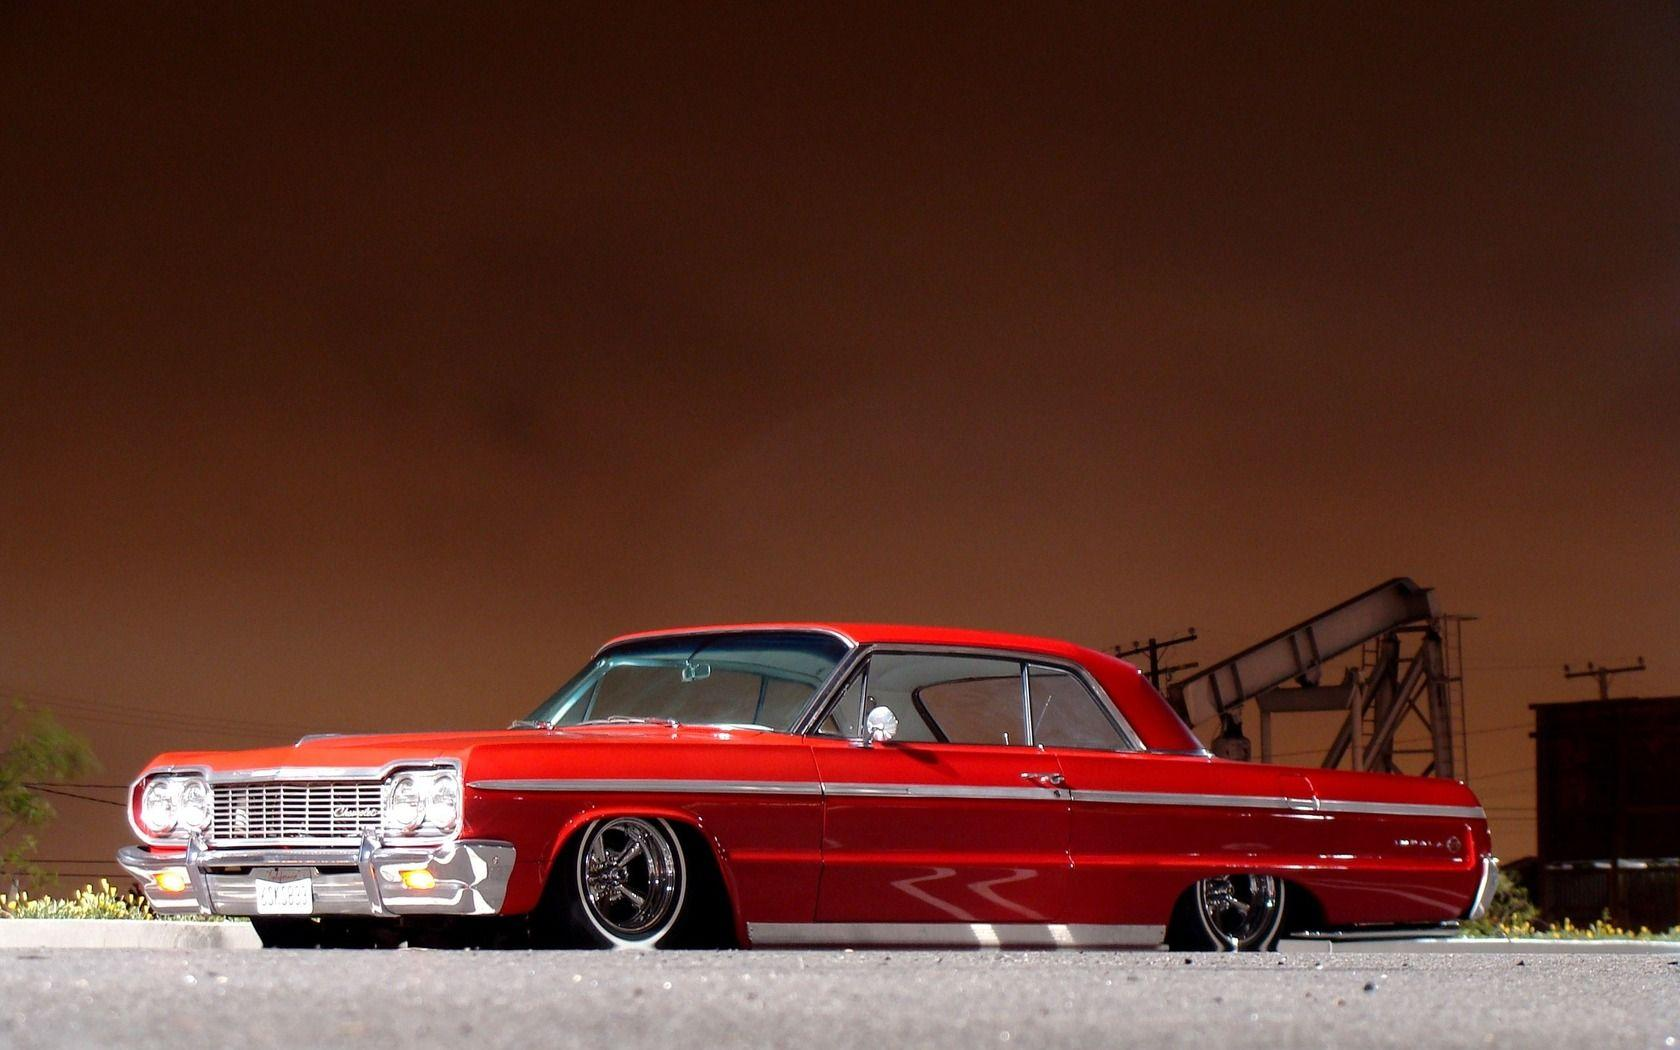 Lowrider Wallpaper and Background Image | 1680x1050 | ID:303066